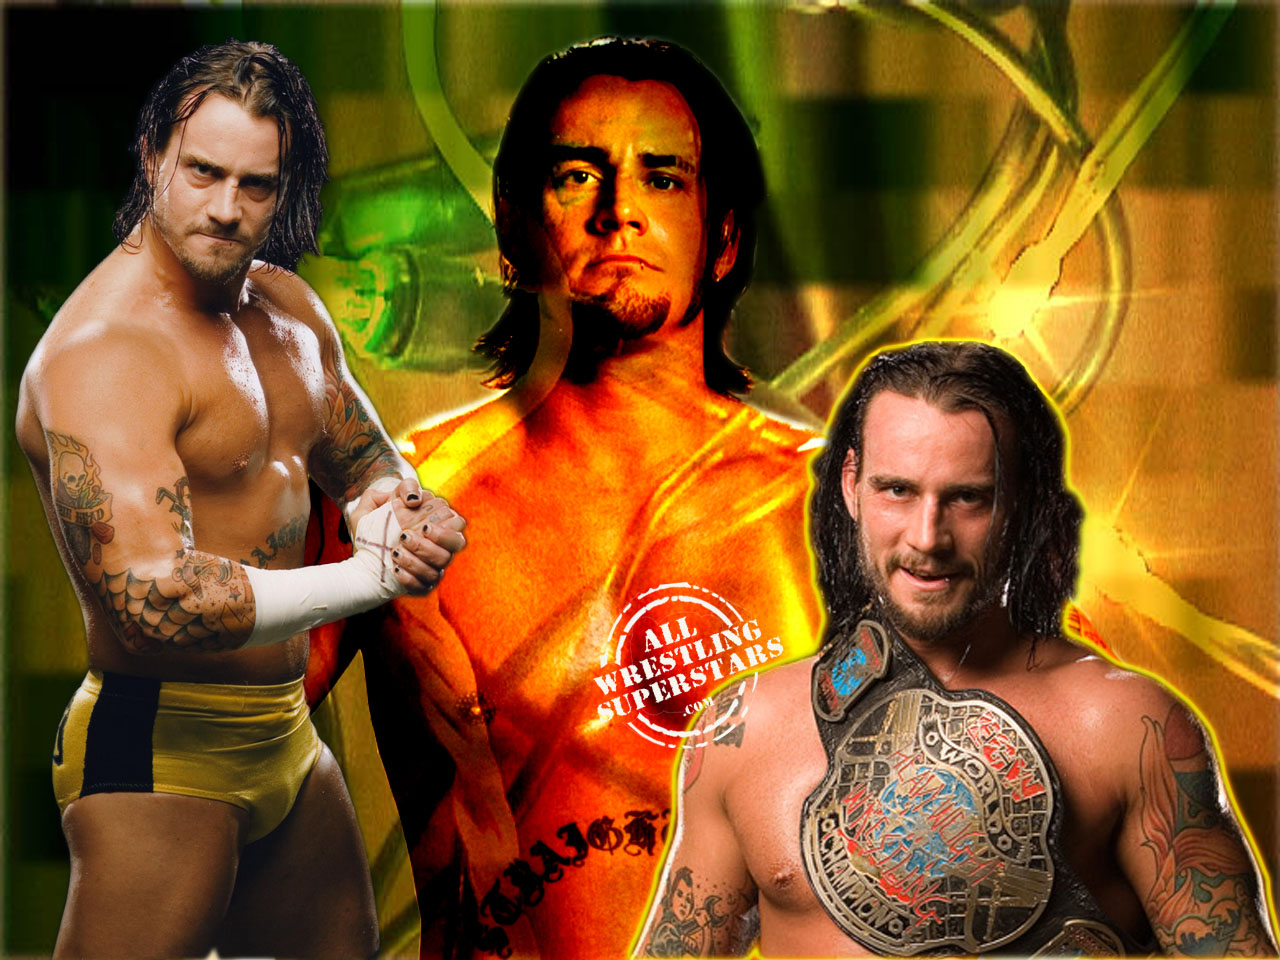 Cm punk tlc wallpaper wallpaper pictures gallery http4bpspot v2dbkby1tutmoeg6sxv0i cm punk wallpapers wwe wrestlemania download voltagebd Choice Image